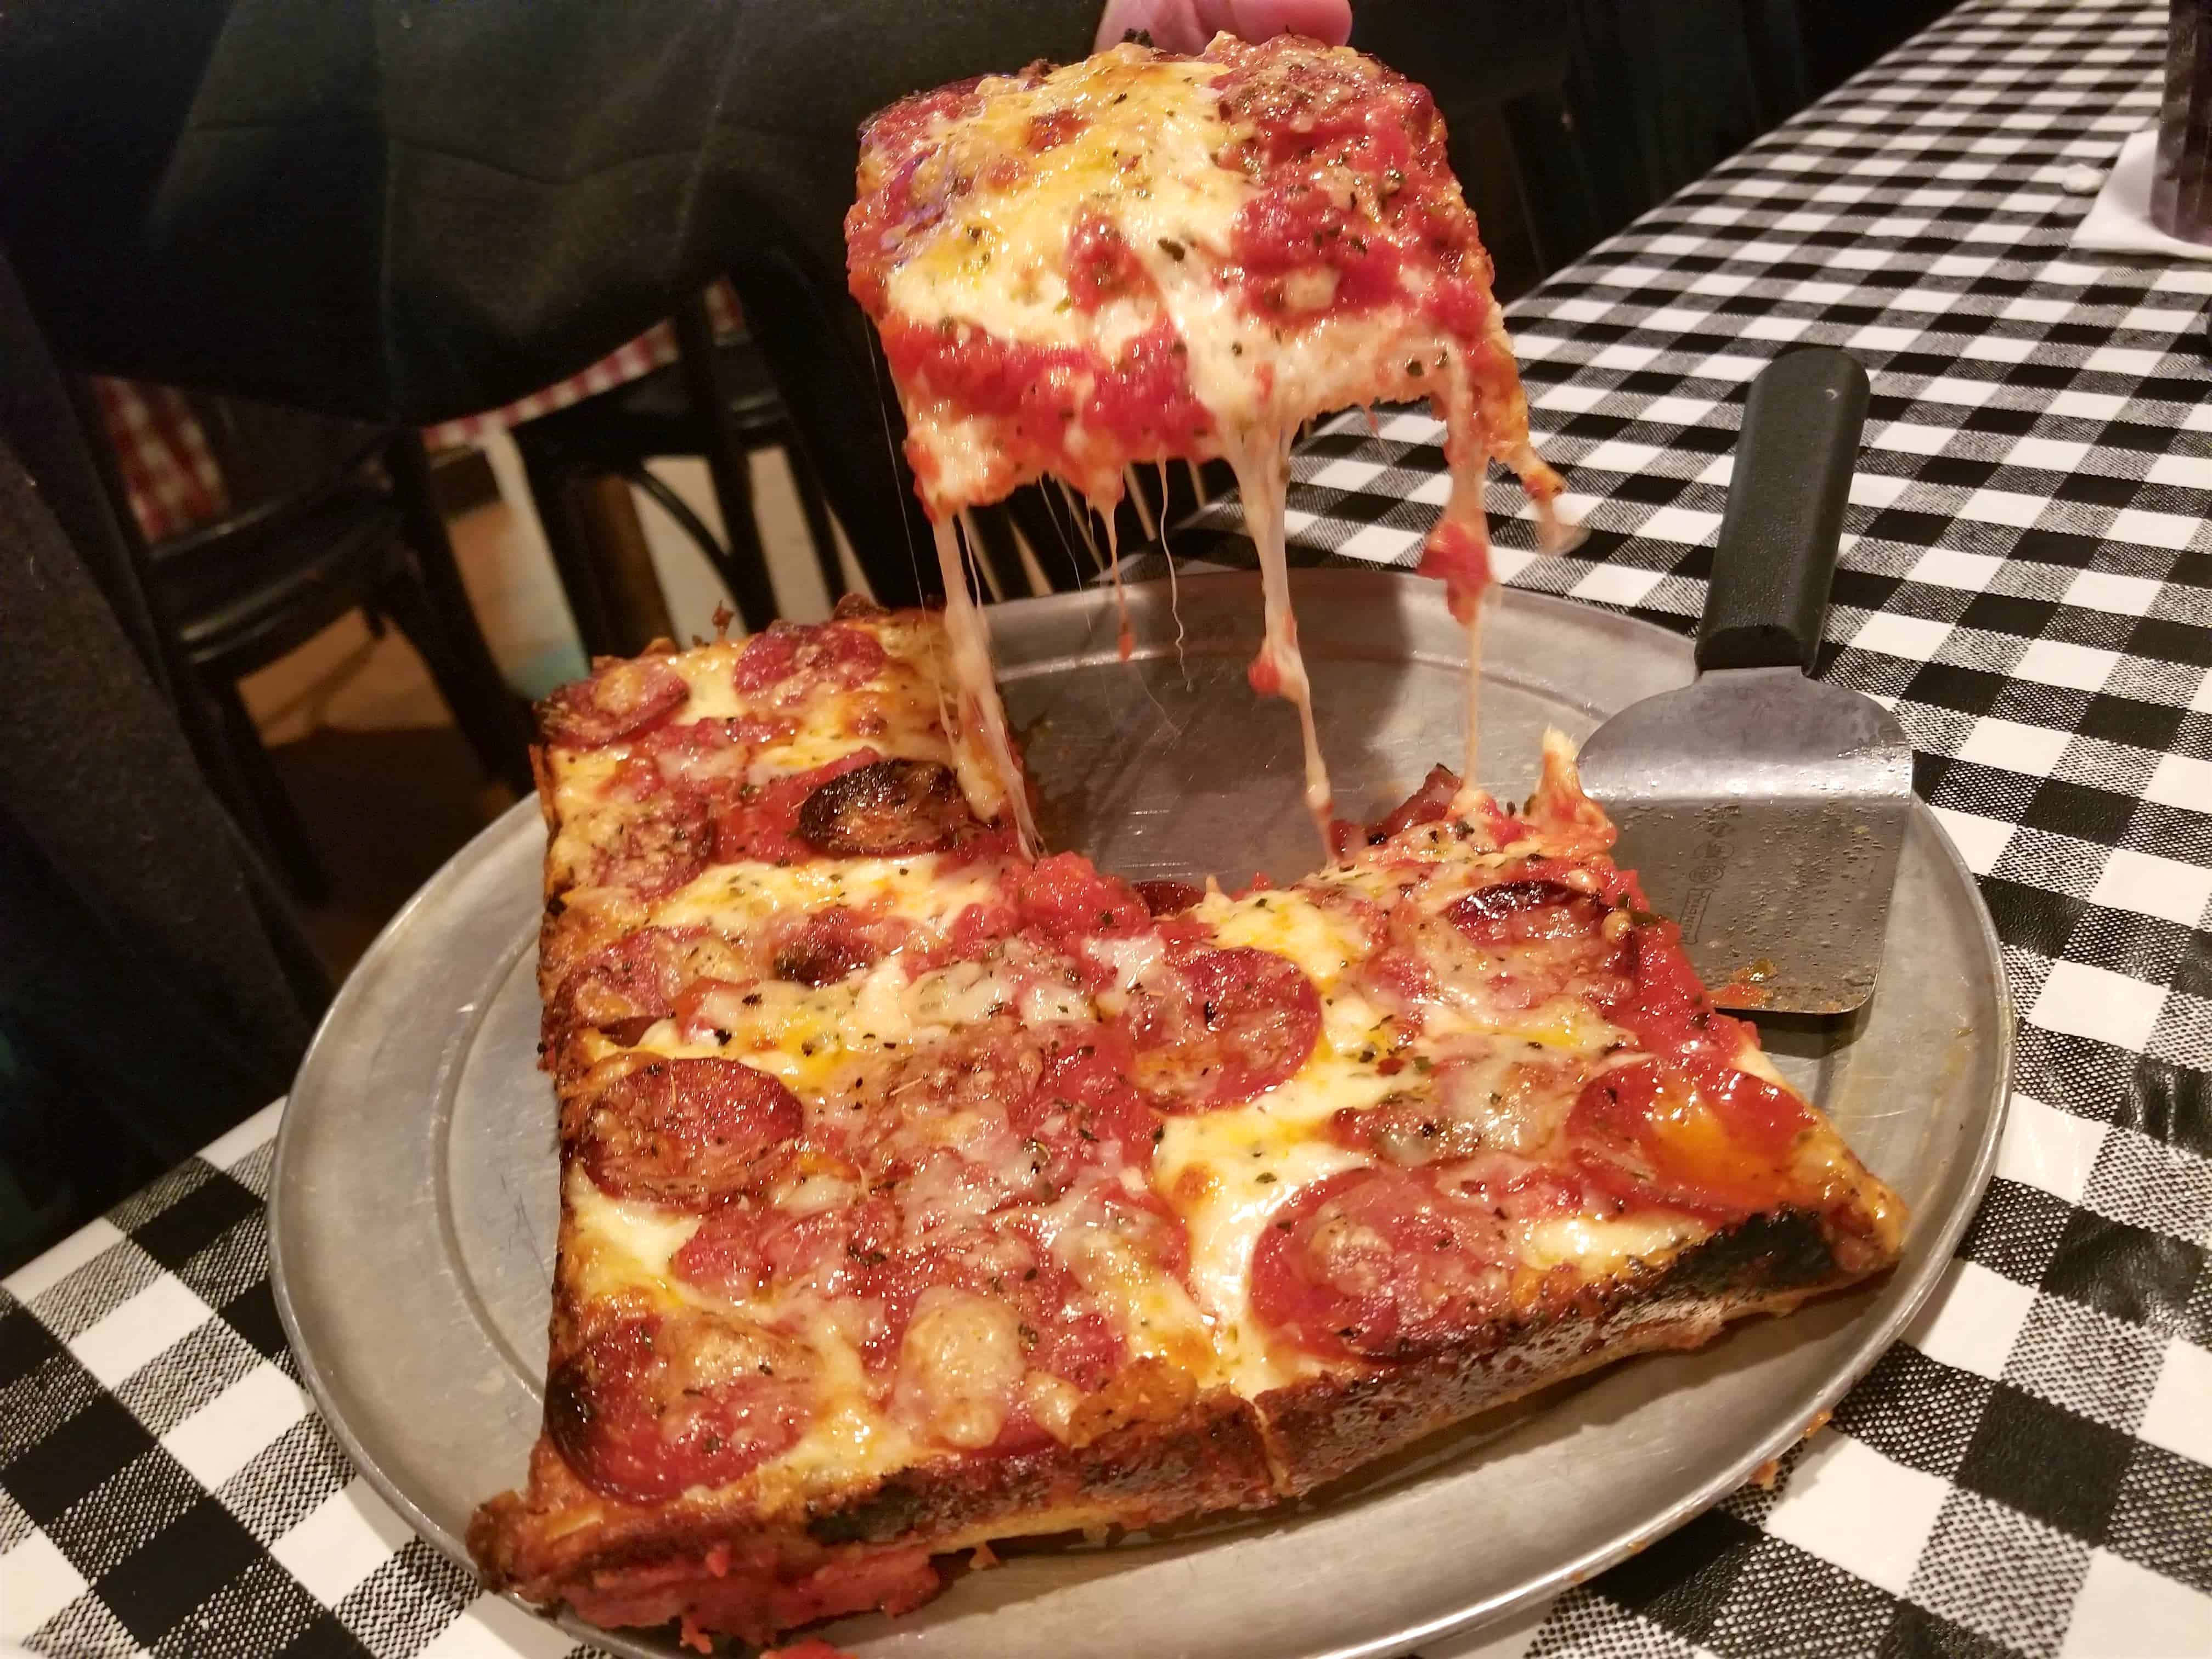 Detroit square pizza at Buddy's